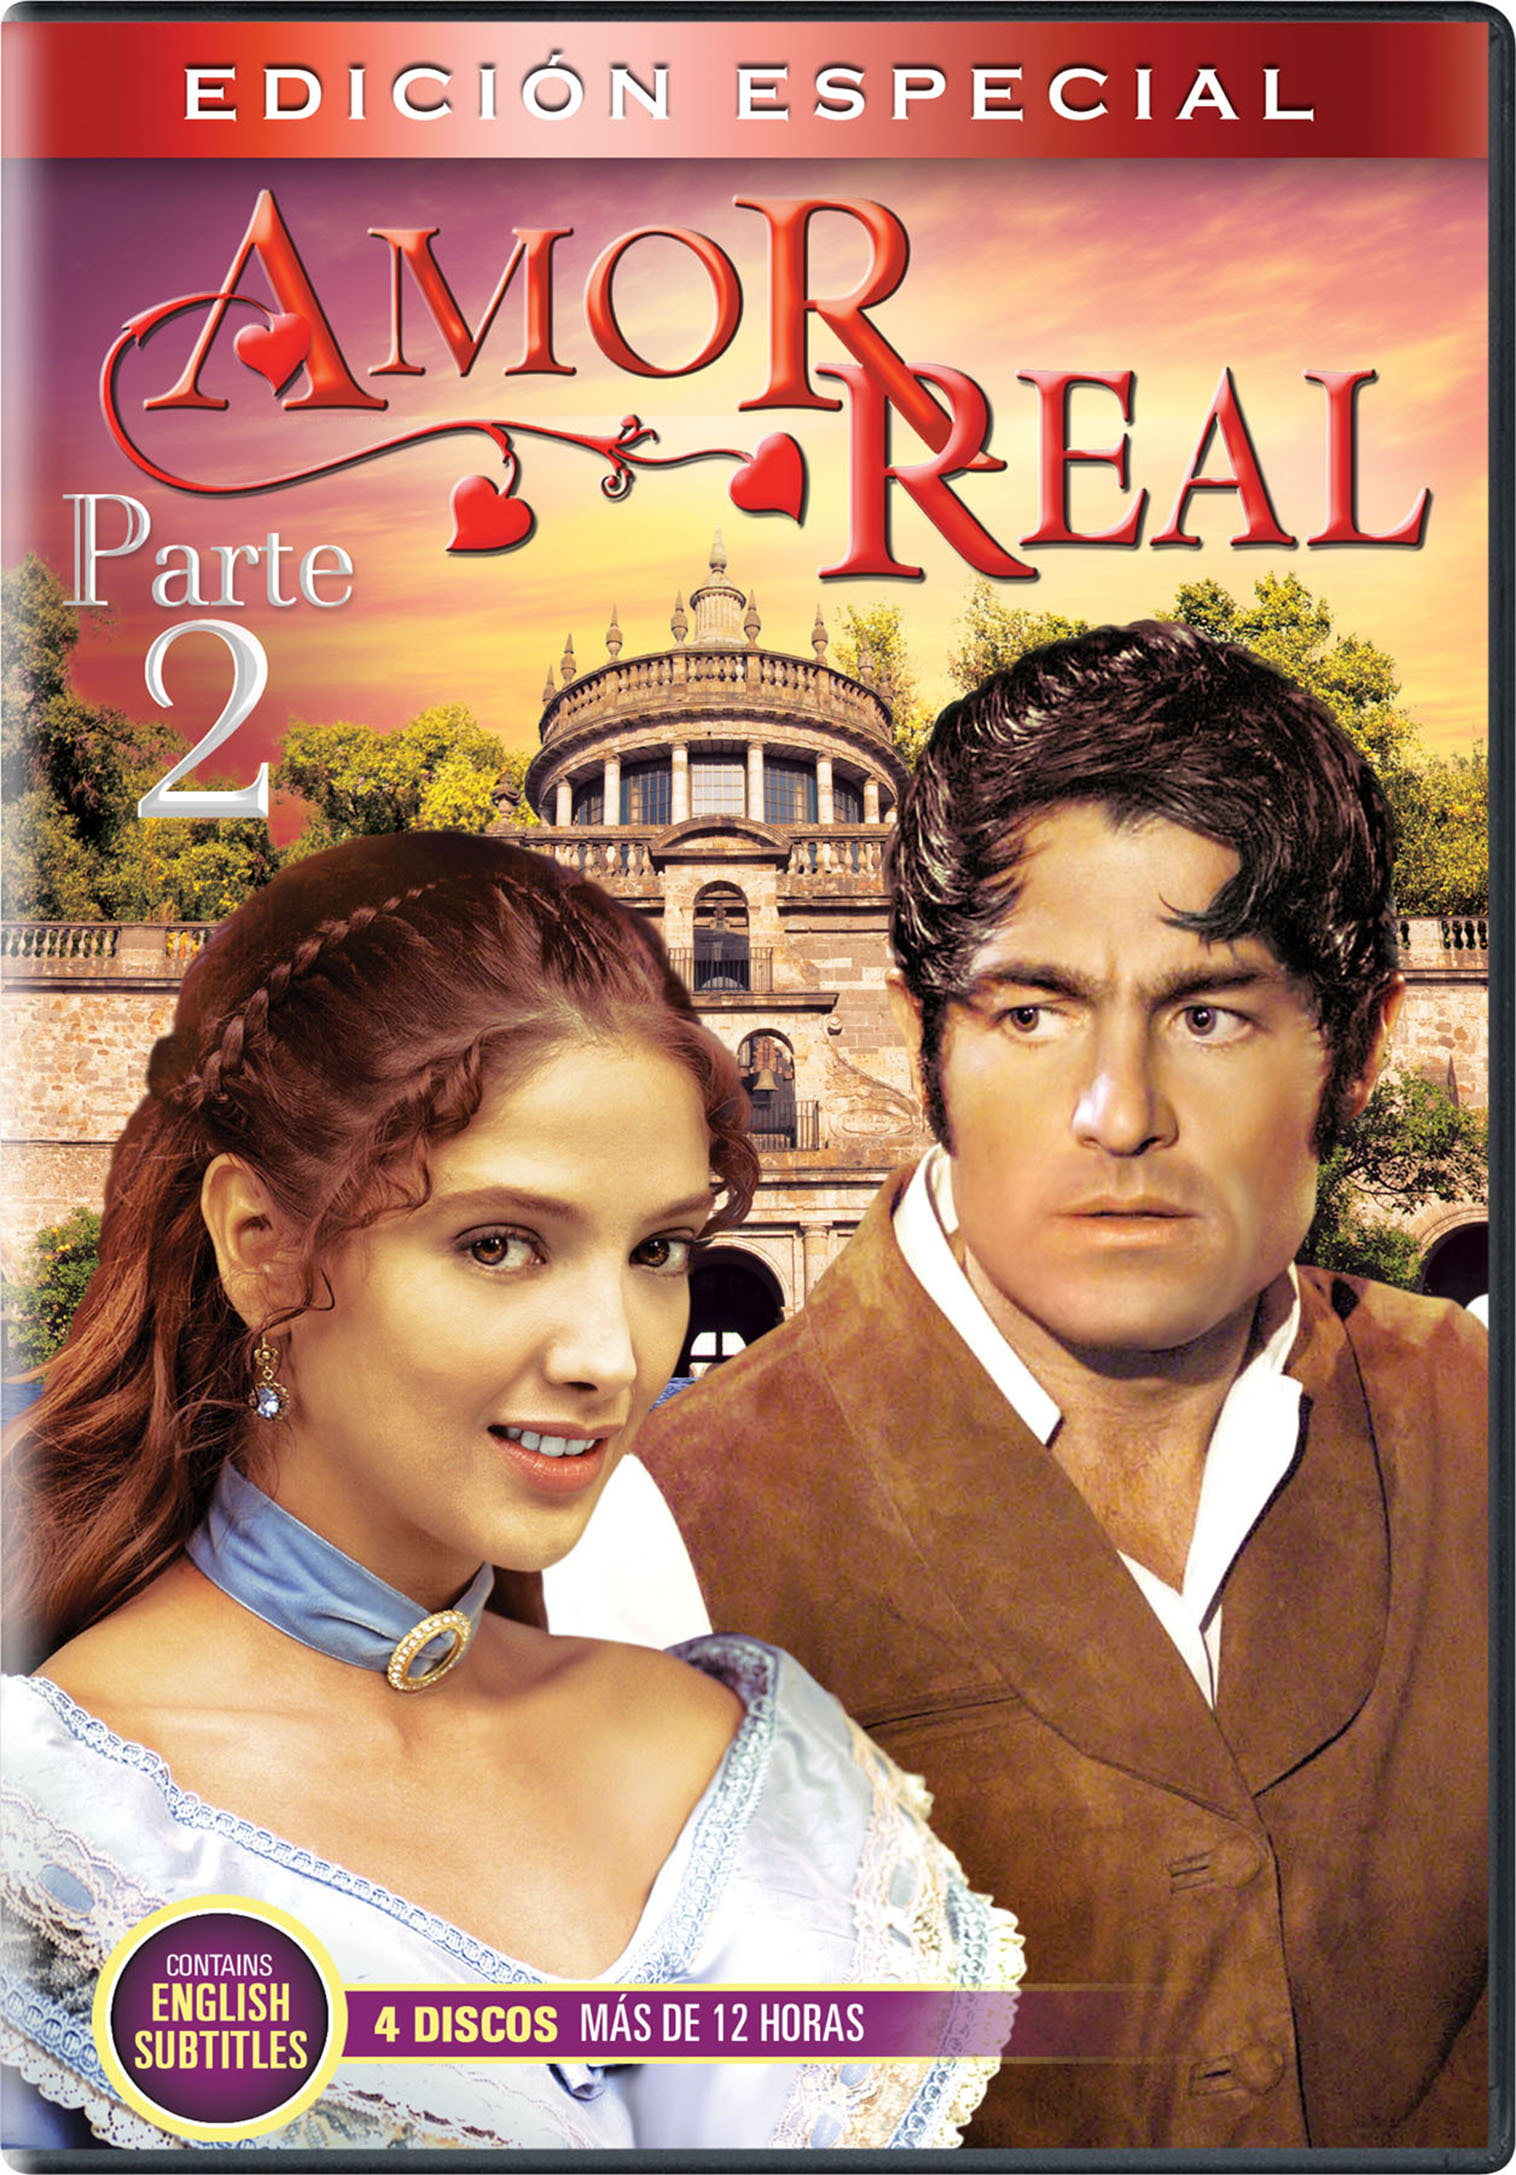 Amor Real amor real, special edition: volume 2 - televisa - cinedigm